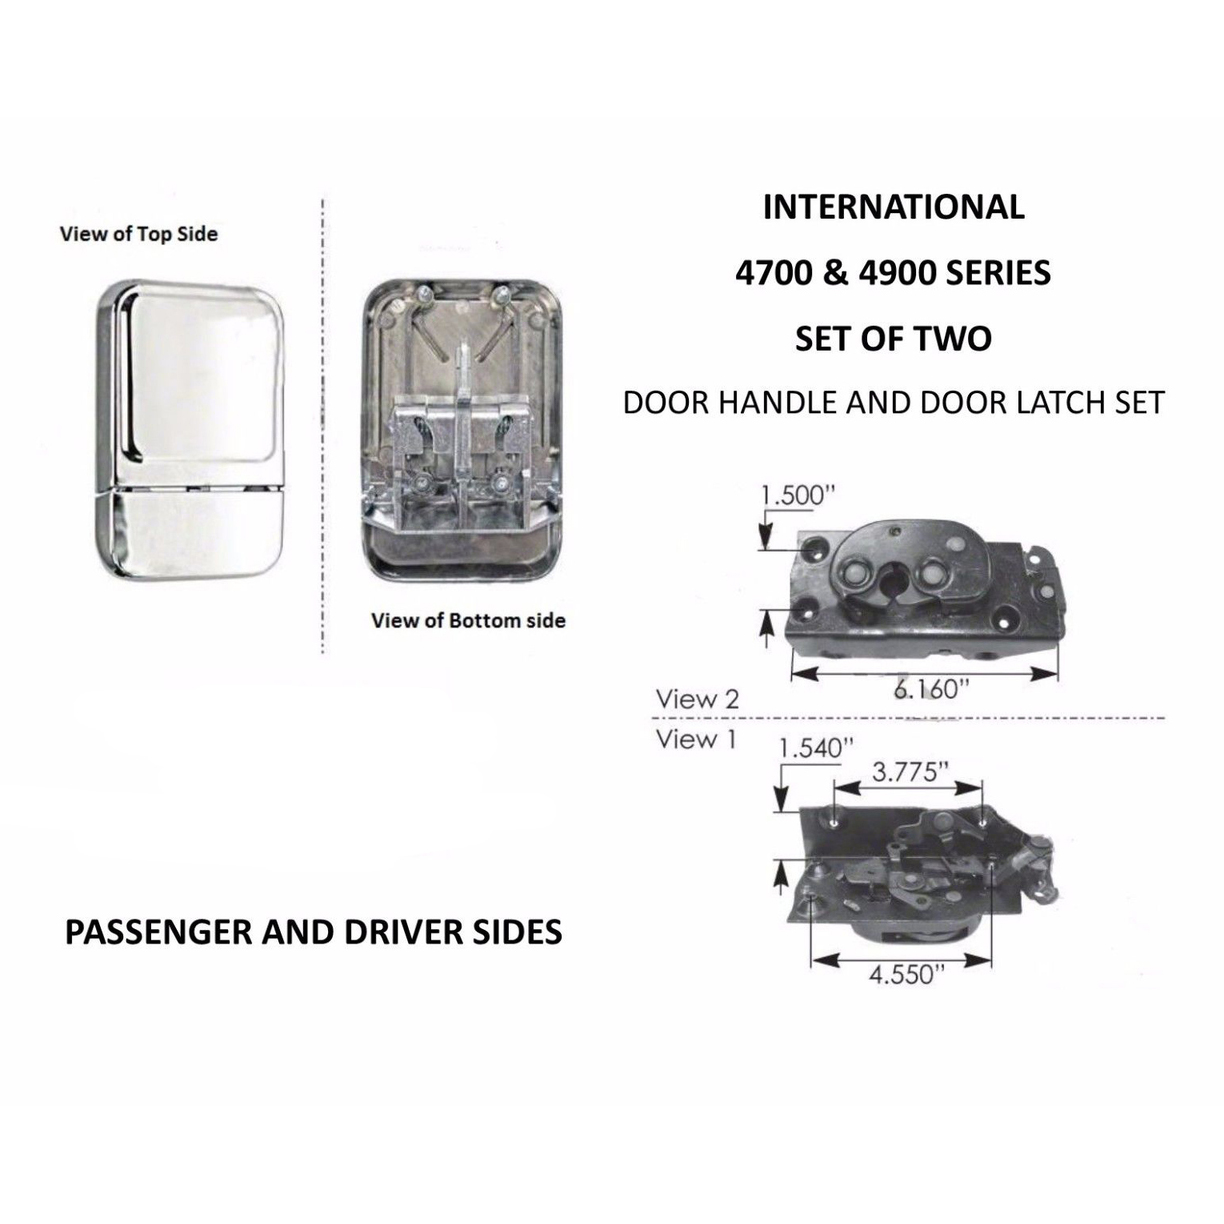 Door Handle & Door Latch Set for International 4700, 4900 Series